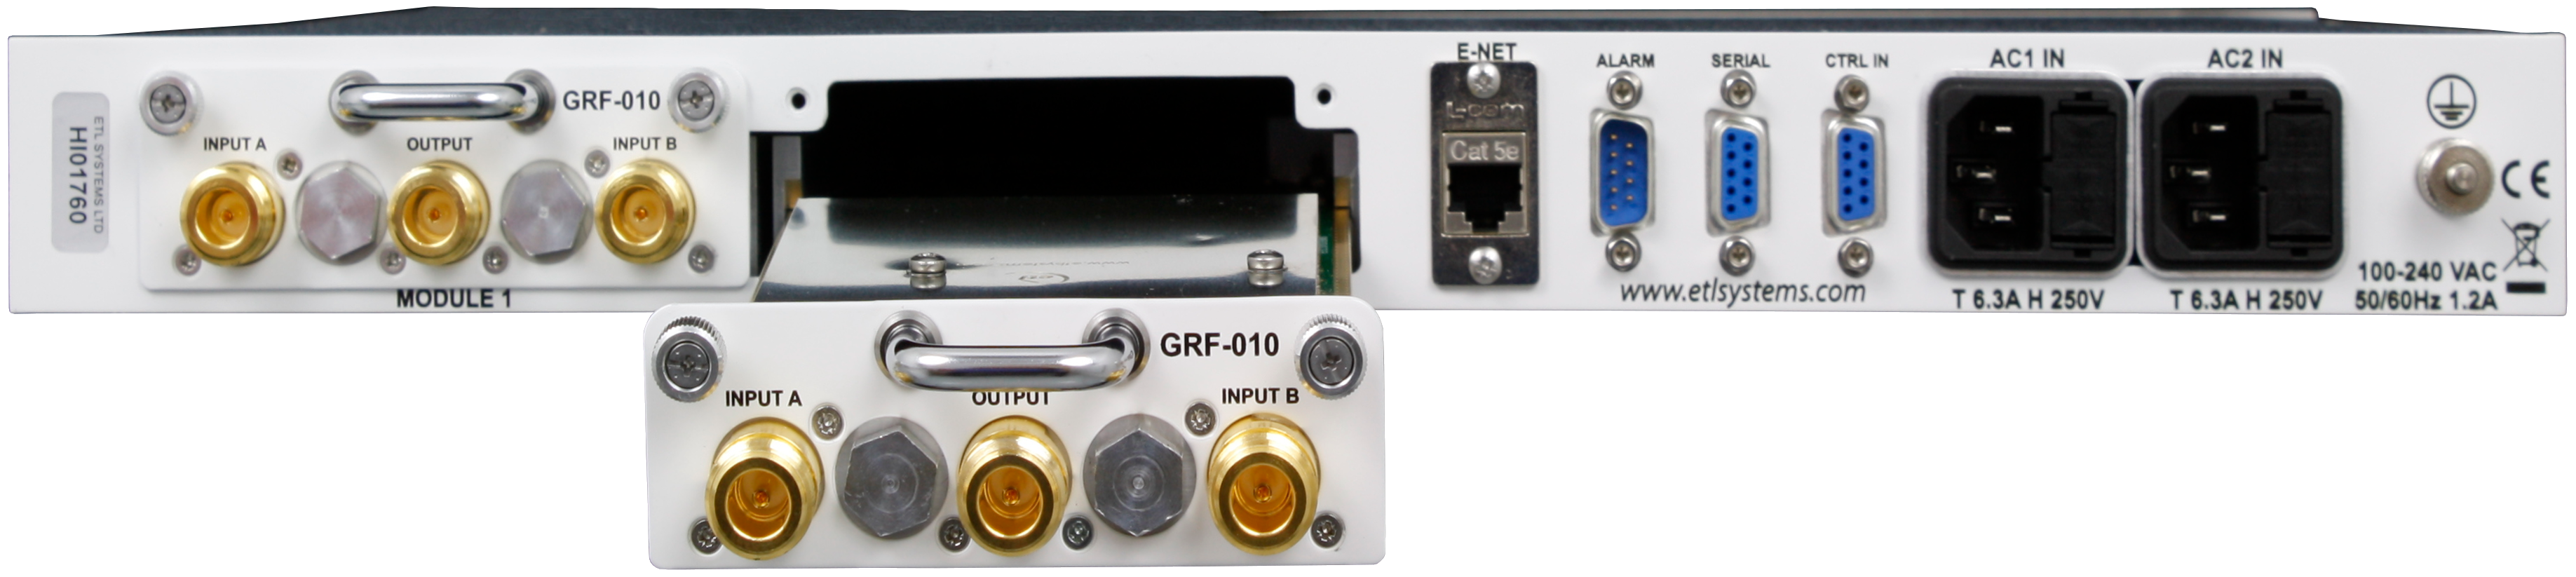 Griffin Redundancy Switch Module GRF-050